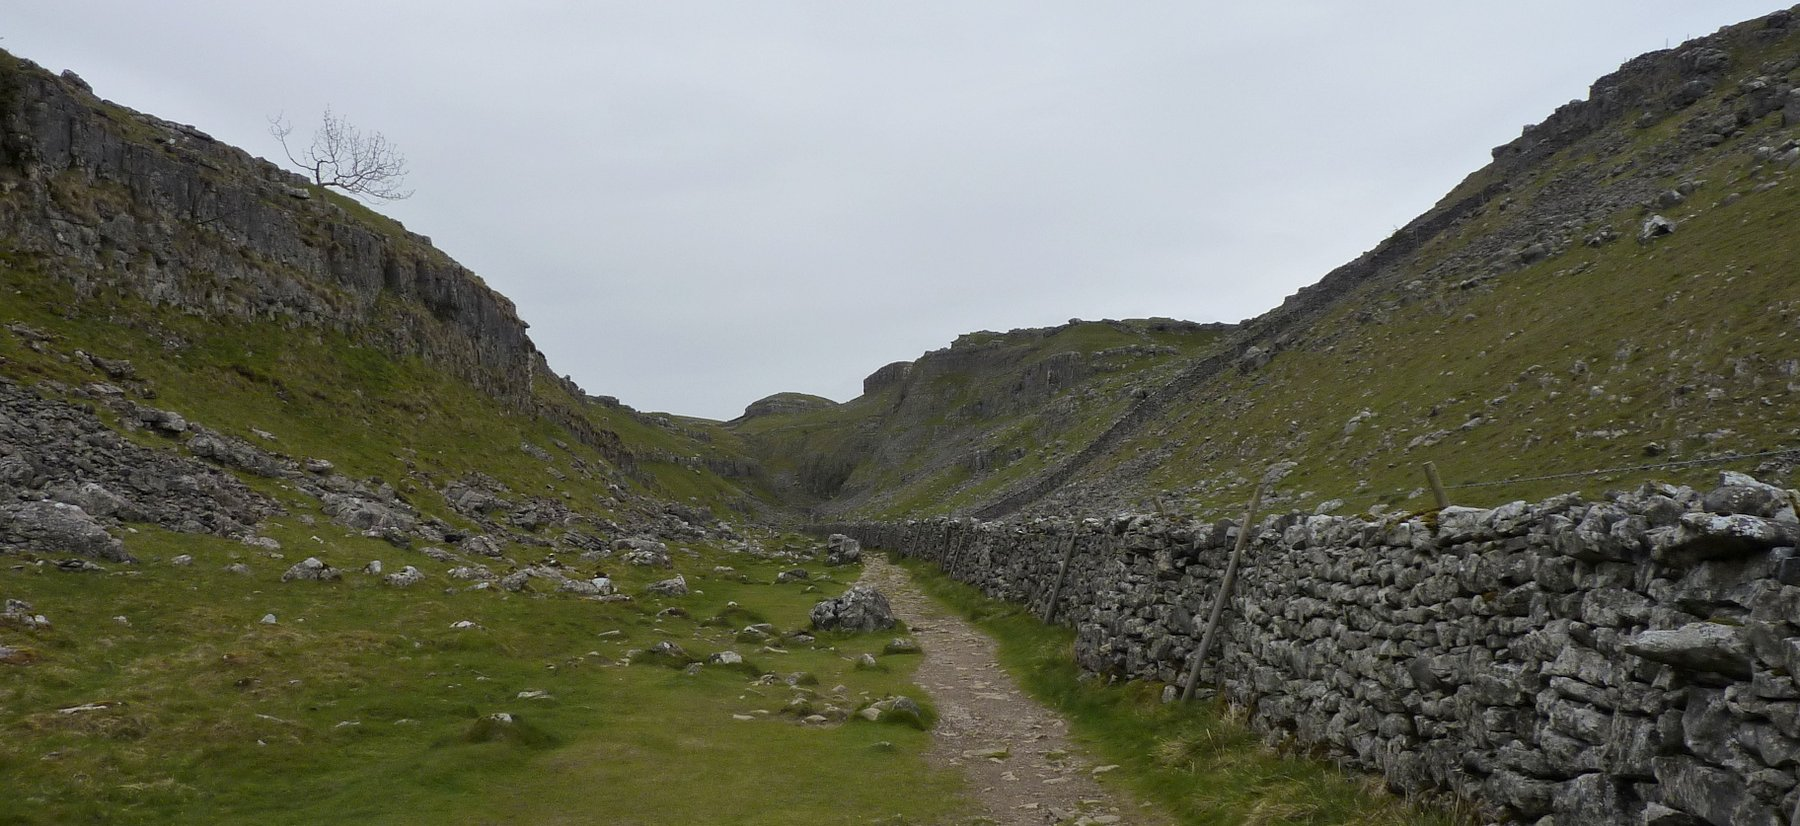 Walking up the dry valley of Watlowes